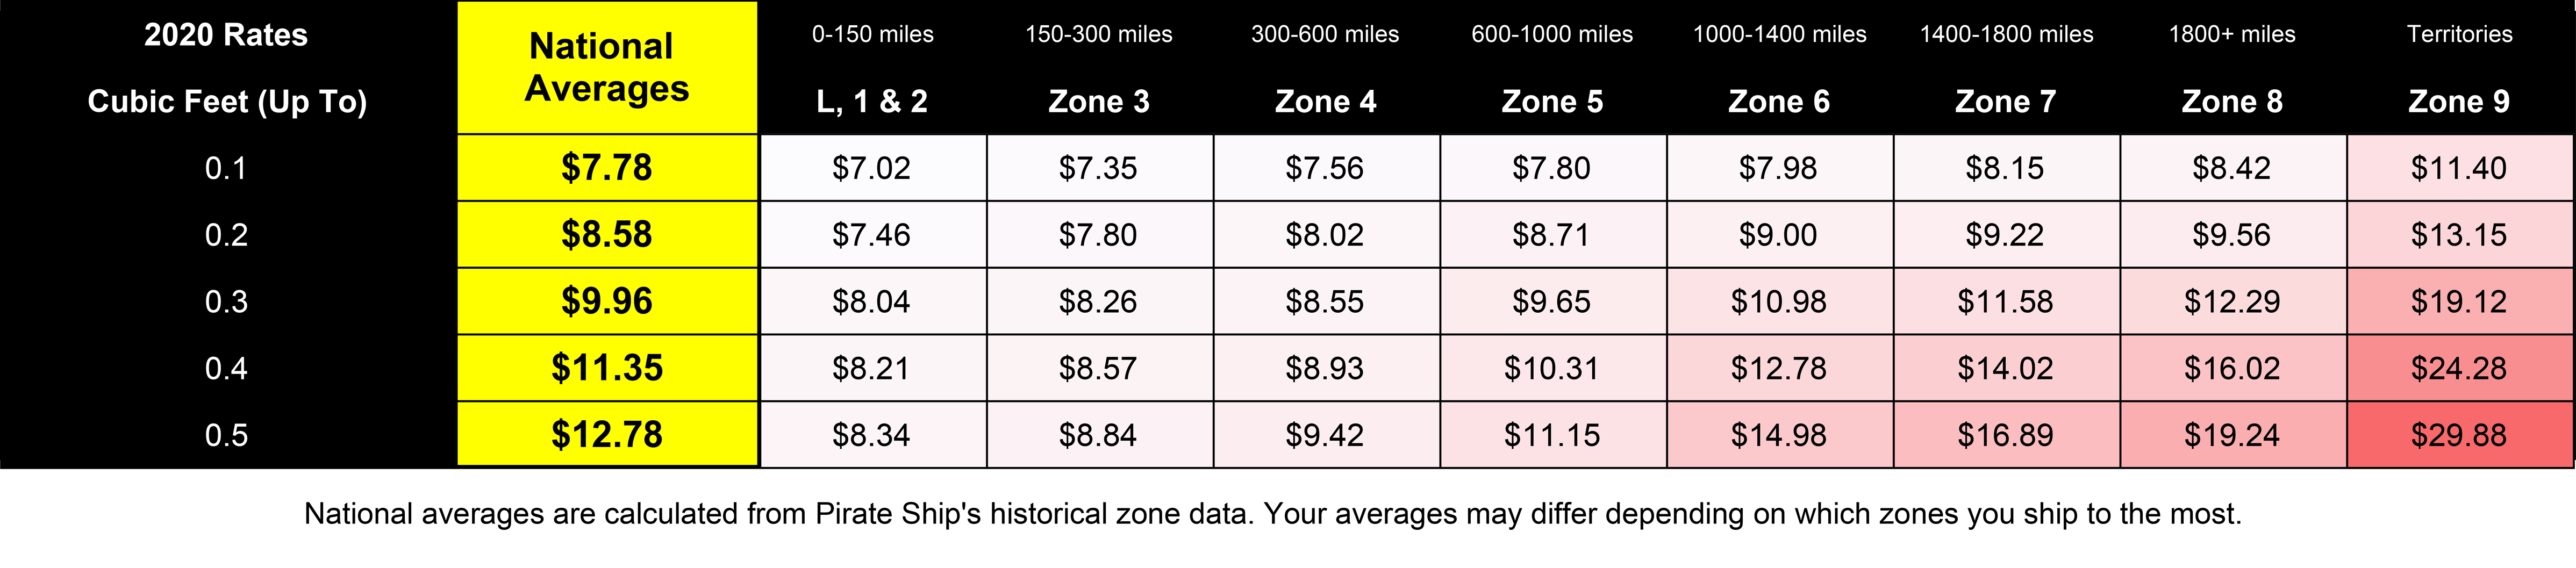 A screenshot showing the 2020 USPS rates for Priority Mail Cubic for the different zones. For Cubic tier 0.1, the national average is $7.78, and the rates are as follows- zones 1 and 2 are $7.02, zone 3 is $7.35, zone 4 is $7.56, zone 5 is $7.80, zone 6 is $7.98, zone 7 is $8.15, zone 8 is $8.42, and zone 9 is $11.40. For Cubic tier 0.2, the national average is $8.58, and the rates are as follows- zones 1 and 2 are $7.46, zone 3 is $7.80, zone 4 is $8.02, zone 5 is $8.71, zone 6 is $9.00, zone 7 is $9.22, zone 8 is $9.56, and zone 9 is $13.15. For Cubic tier 0.3, the national average is $9.96, and the rates are as follows- zones 1 and 2 are $8.04, zone 3 is $8.26, zone 4 is $8.55, zone 5 is $9.65, zone 6 is $10.98, zone 7 is $11.58, zone 8 is $12.29, and zone 9 is $19.12. For Cubic tier 0.4, the national average is $11.35, and the rates are as follows- zones 1 and 2 are $8.21, zone 3 is $8.57, zone 4 is $8.93, zone 5 is $10.31, zone 6 is $12.78, zone 7 is $14.02, zone 8 is $16.02, and zone 9 is $24.28. For Cubic tier 0.5, the national average is $12.78, and the rates are as follows- zones 1 and 2 are $8.34, zone 3 is $8.84, zone 4 is $9.42, zone 5 is $11.15, zone 6 is $14.98, zone 7 is $16.89, zone 8 is $19.24, and zone 9 is $29.88.